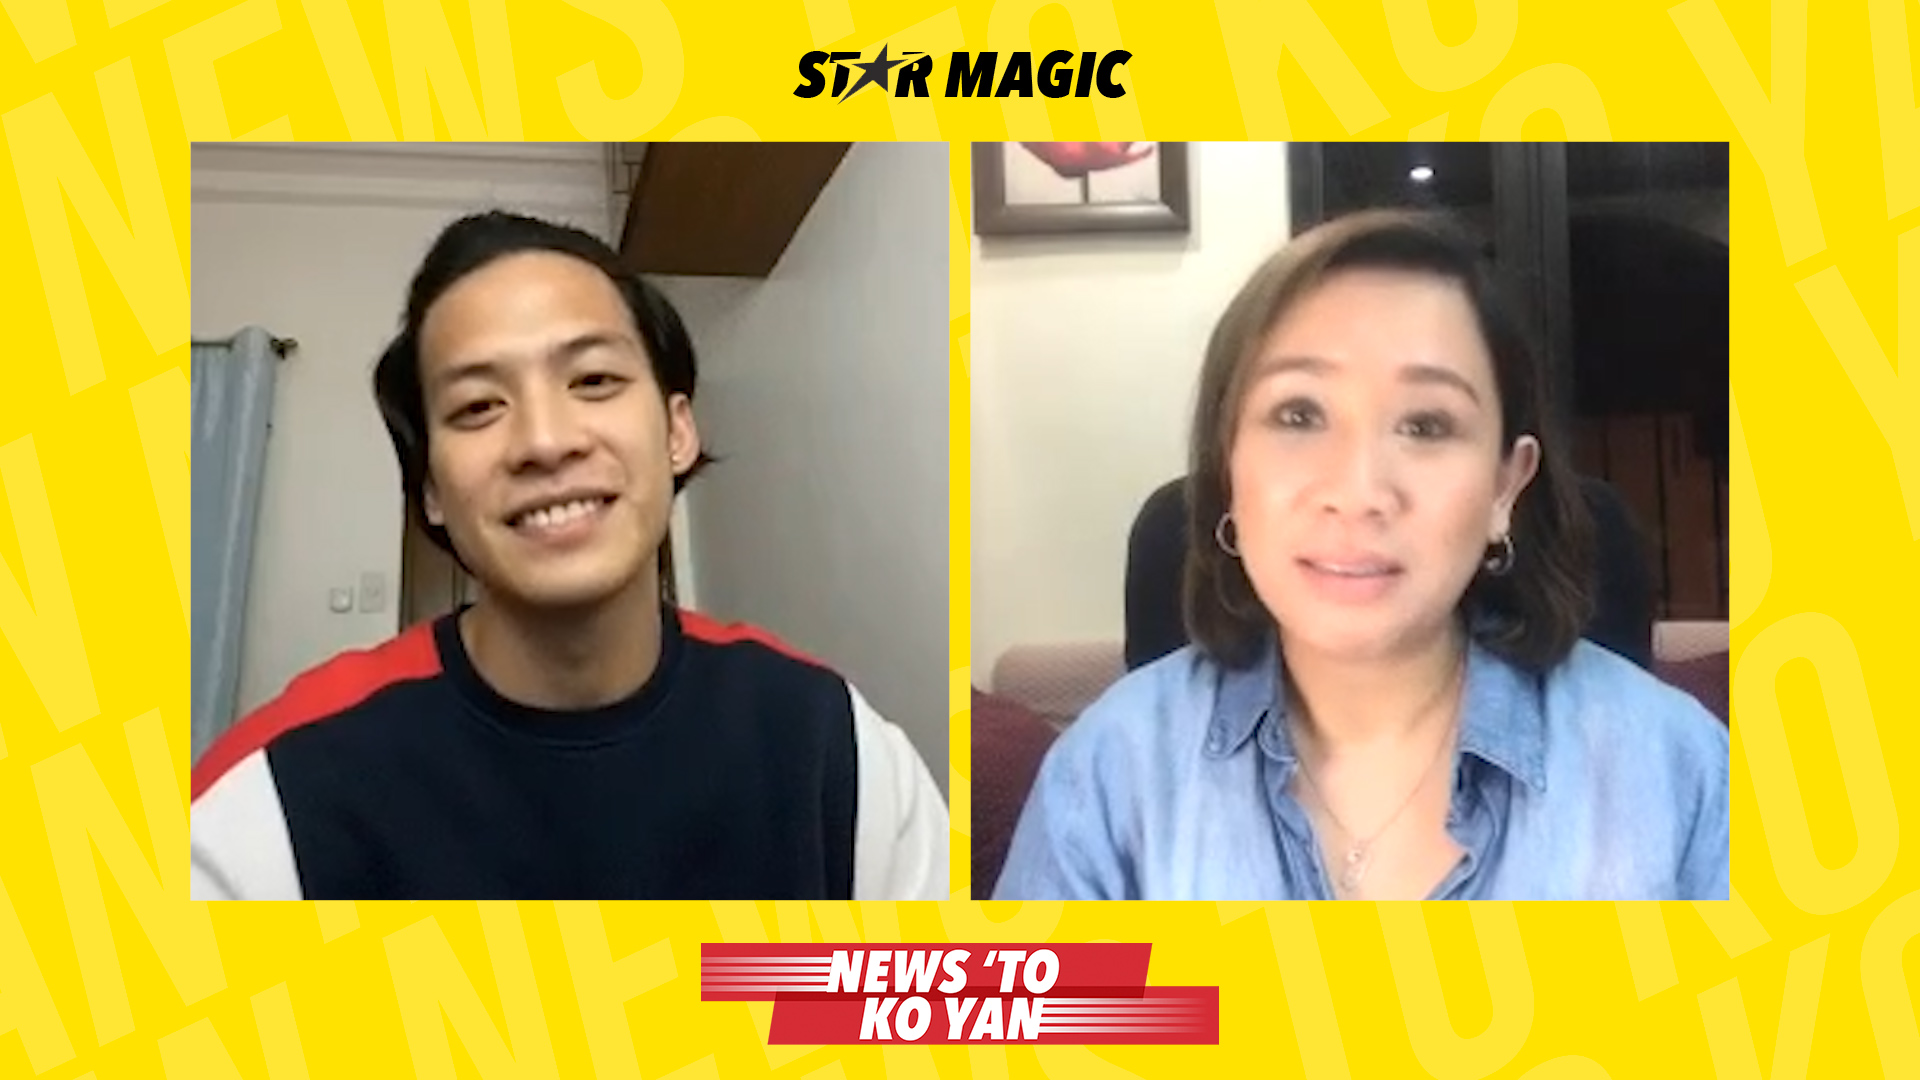 Who does Karl Gabriel want to cook for? | News 'To Ko Yan